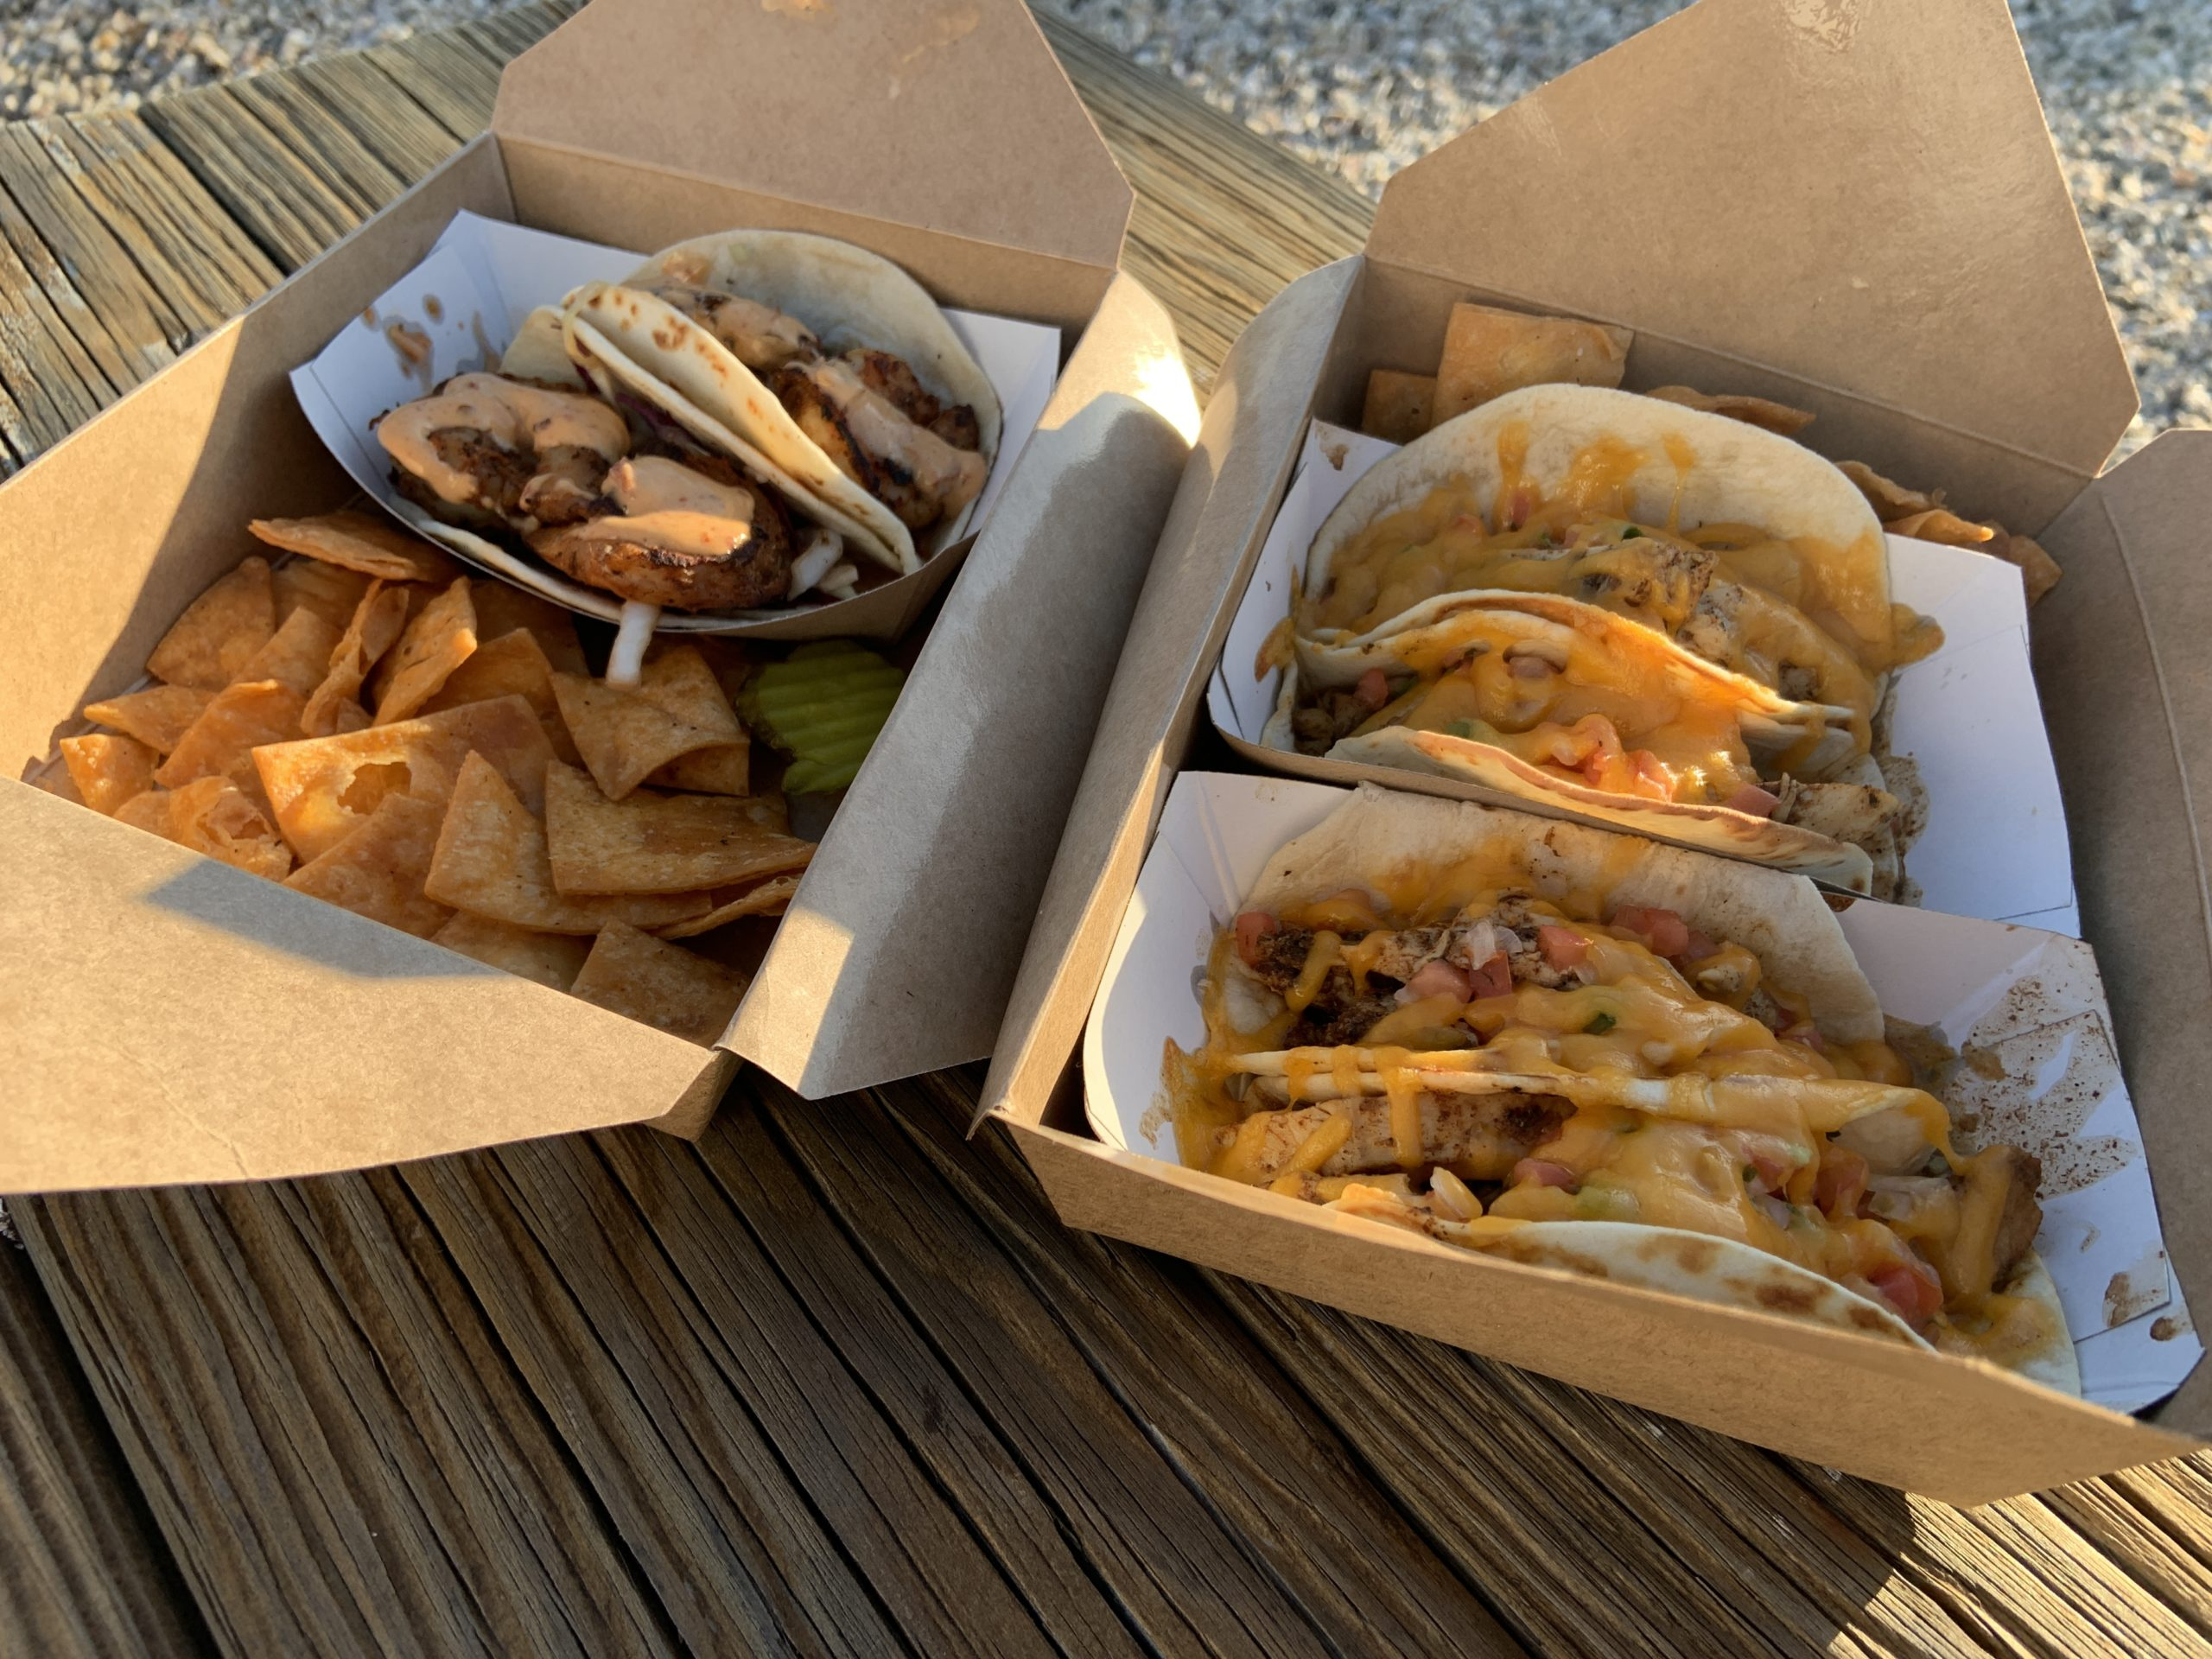 Shuckers shrimp tacos, left, and two orders of chicken tacos, right.